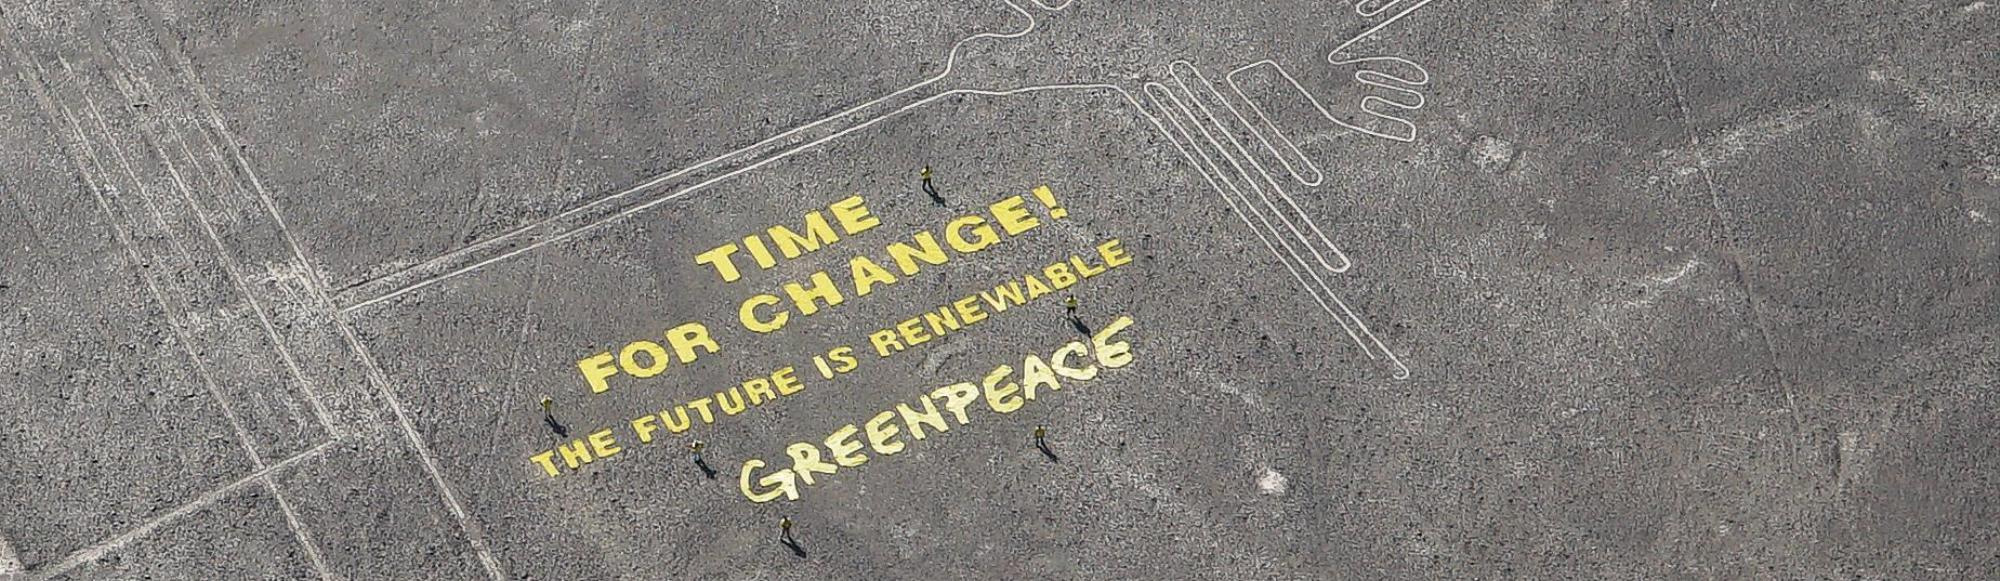 In Photos: Greenpeace Unfurls Climate Message Next to Nazca Lines in Peru